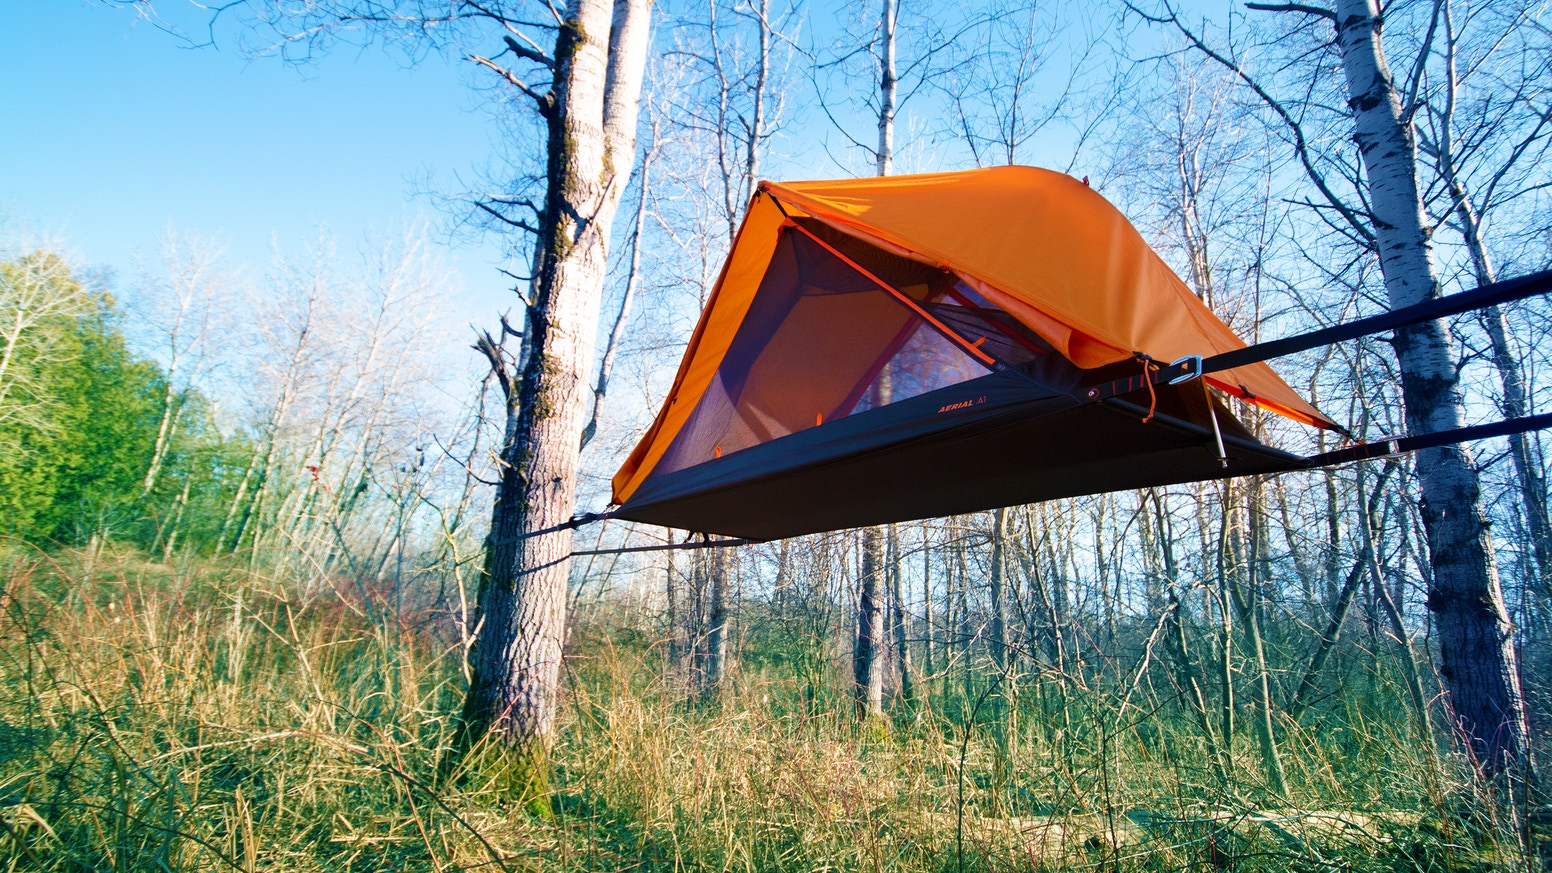 This lightweight tent has a flat, stable sleeping surface that can be suspended between two trees like a hammock.